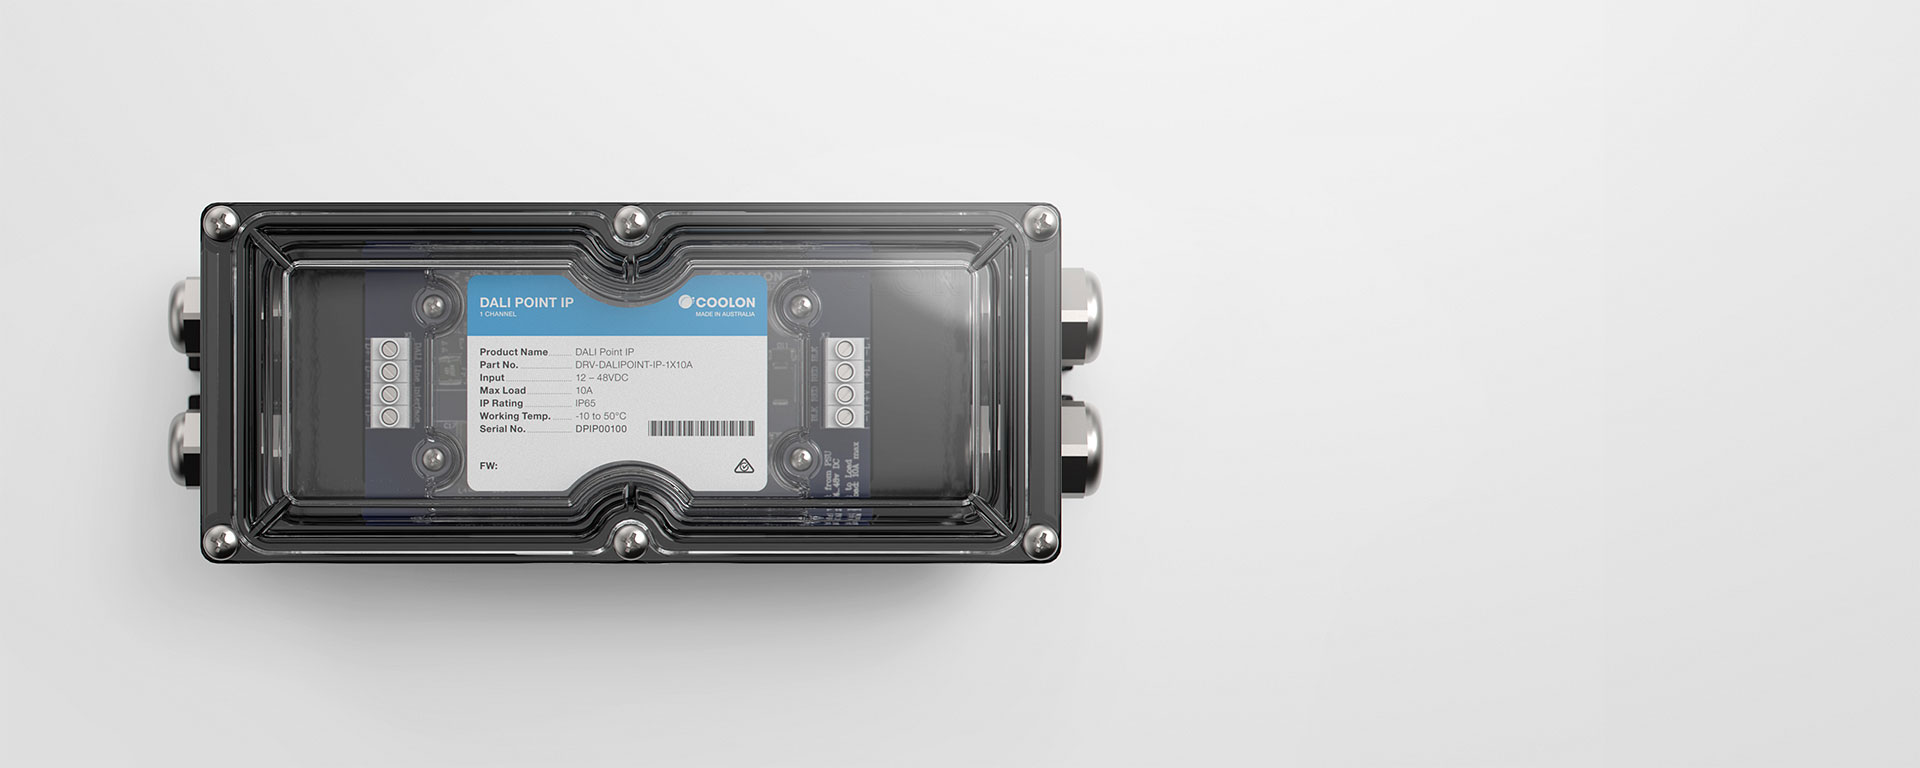 The DALI Point IP driver is designed to suit outdoor DALI controlled LED installations, featuring a robust housing design, suitable for inclement weather.